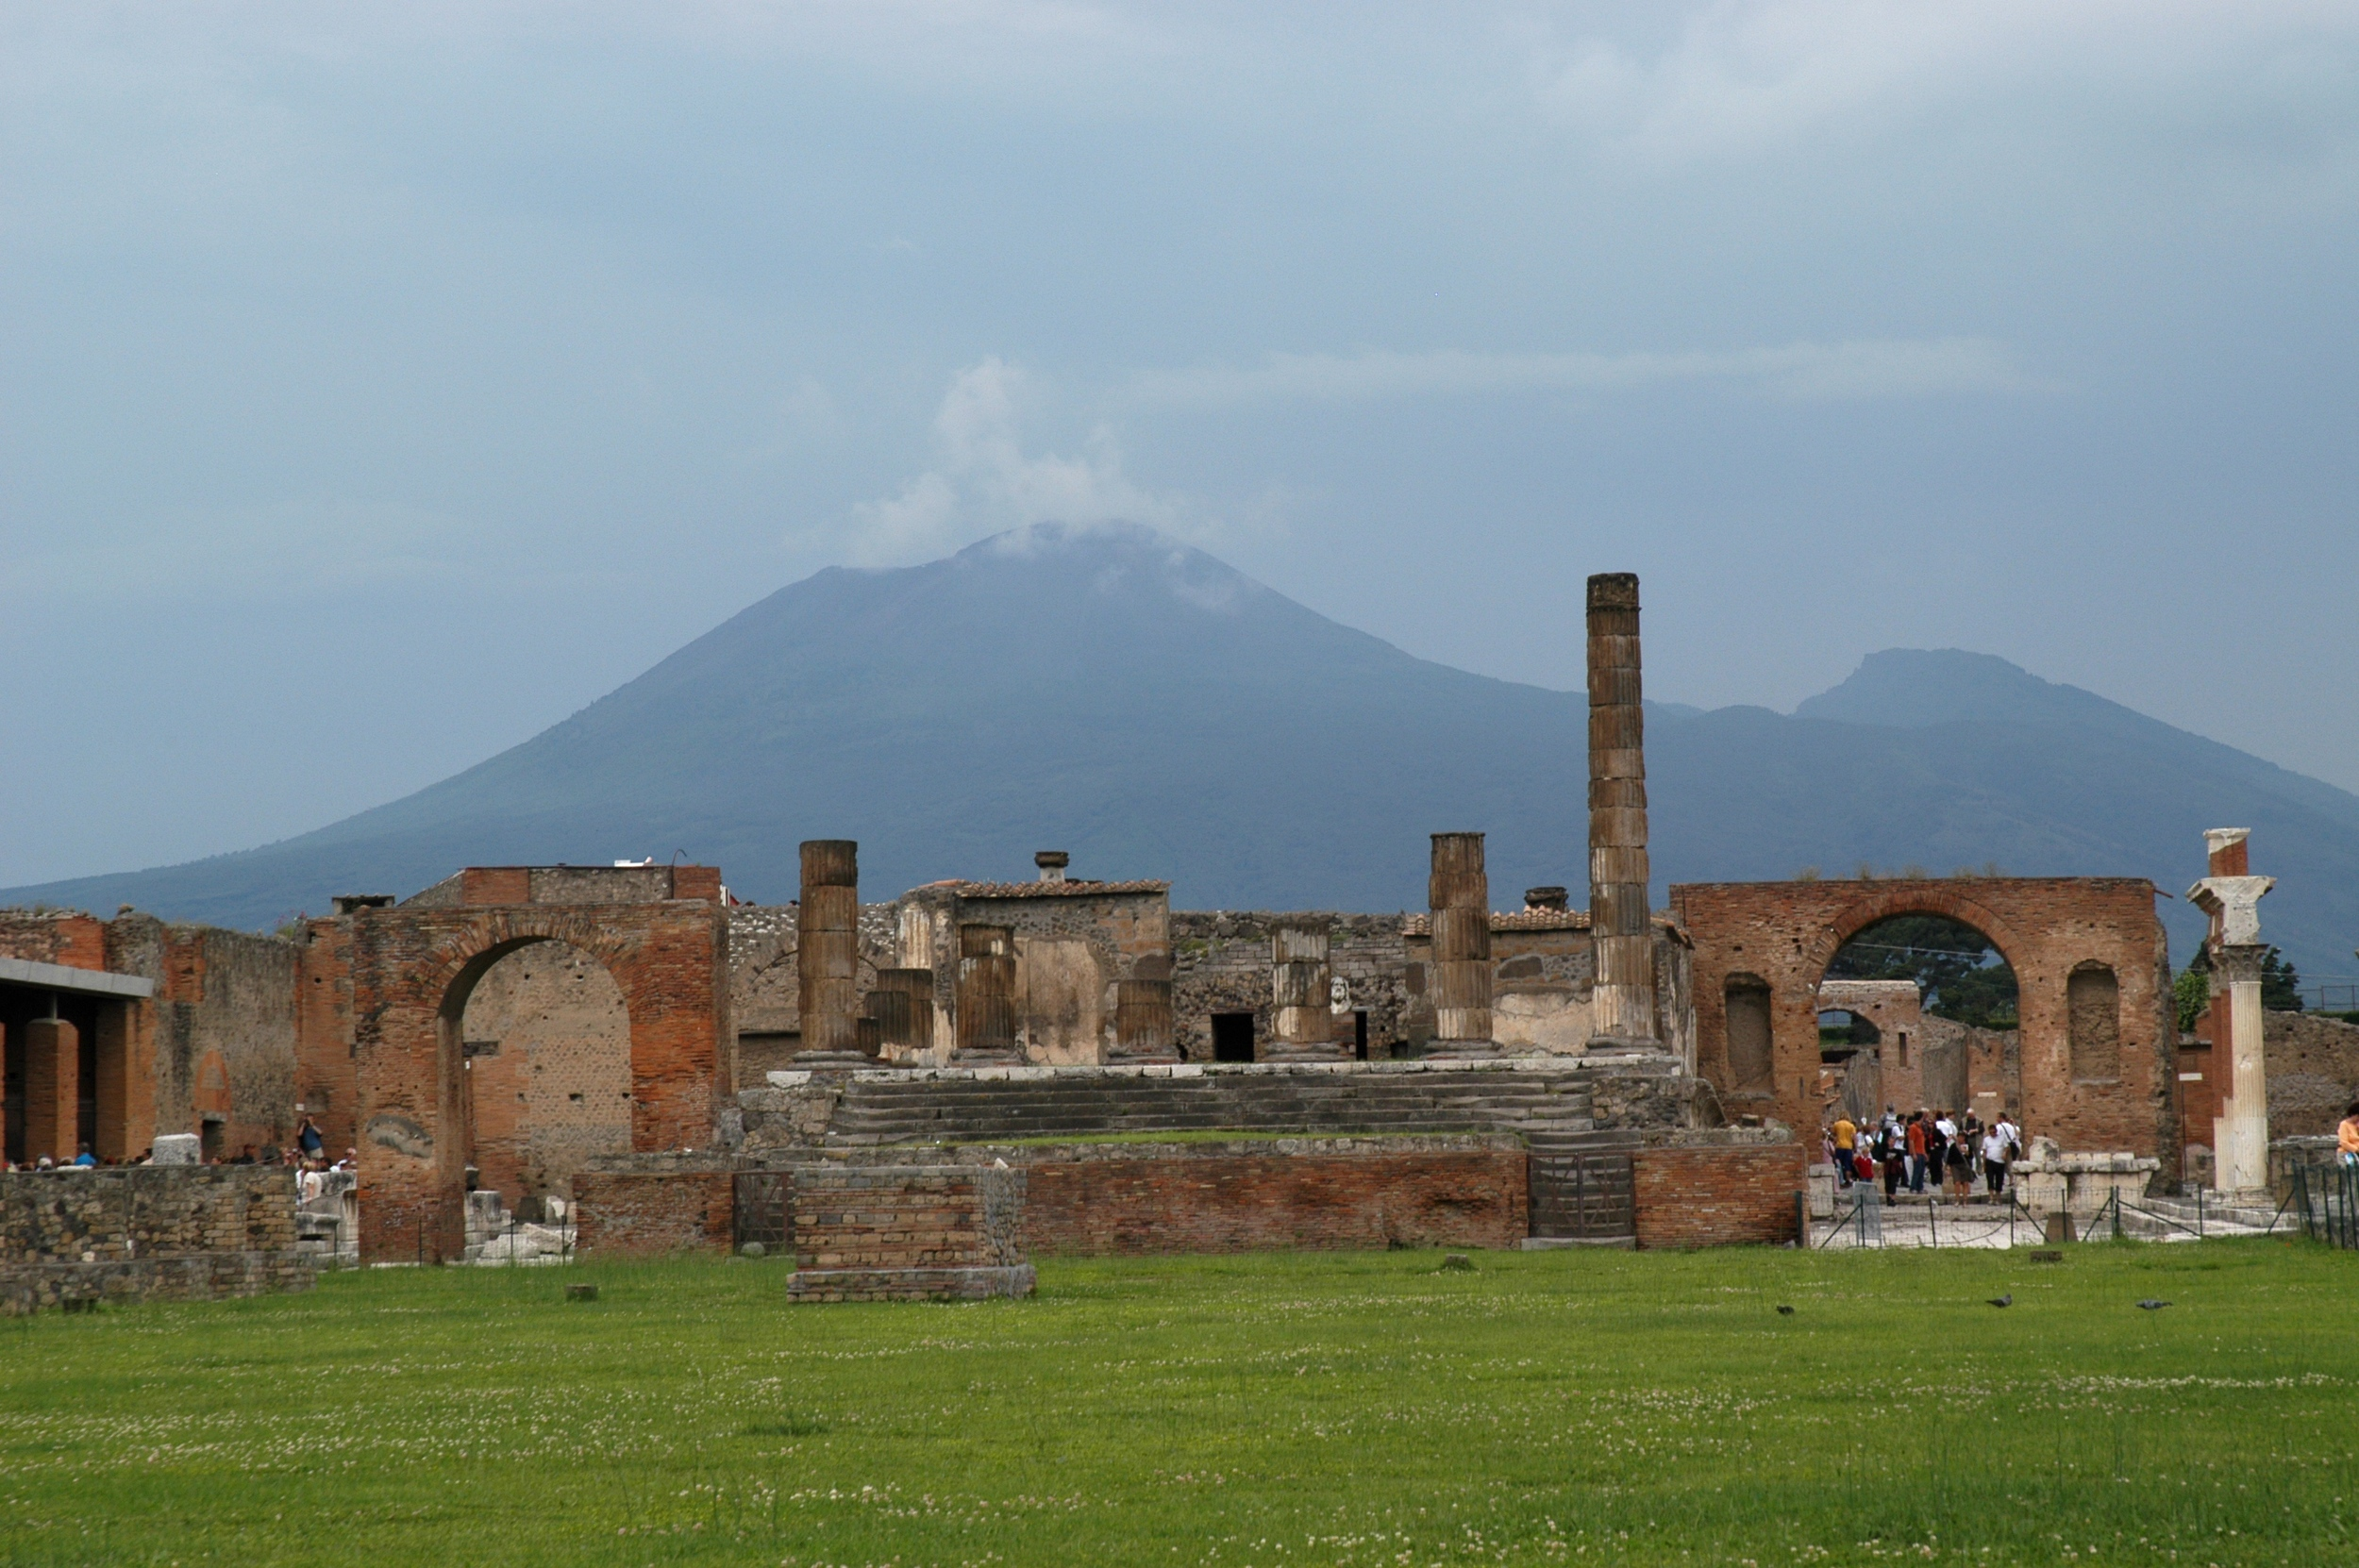 Pompeii - In 79 A.D., Mount Vesuvius erupted and buried the ancient city of Pompeii for hundreds of years. A half-day private guided tour of the preserved frescoes, baths, bakeries, and houses of ill repute explains this built by prosperous Romans centuries ago archeological site.